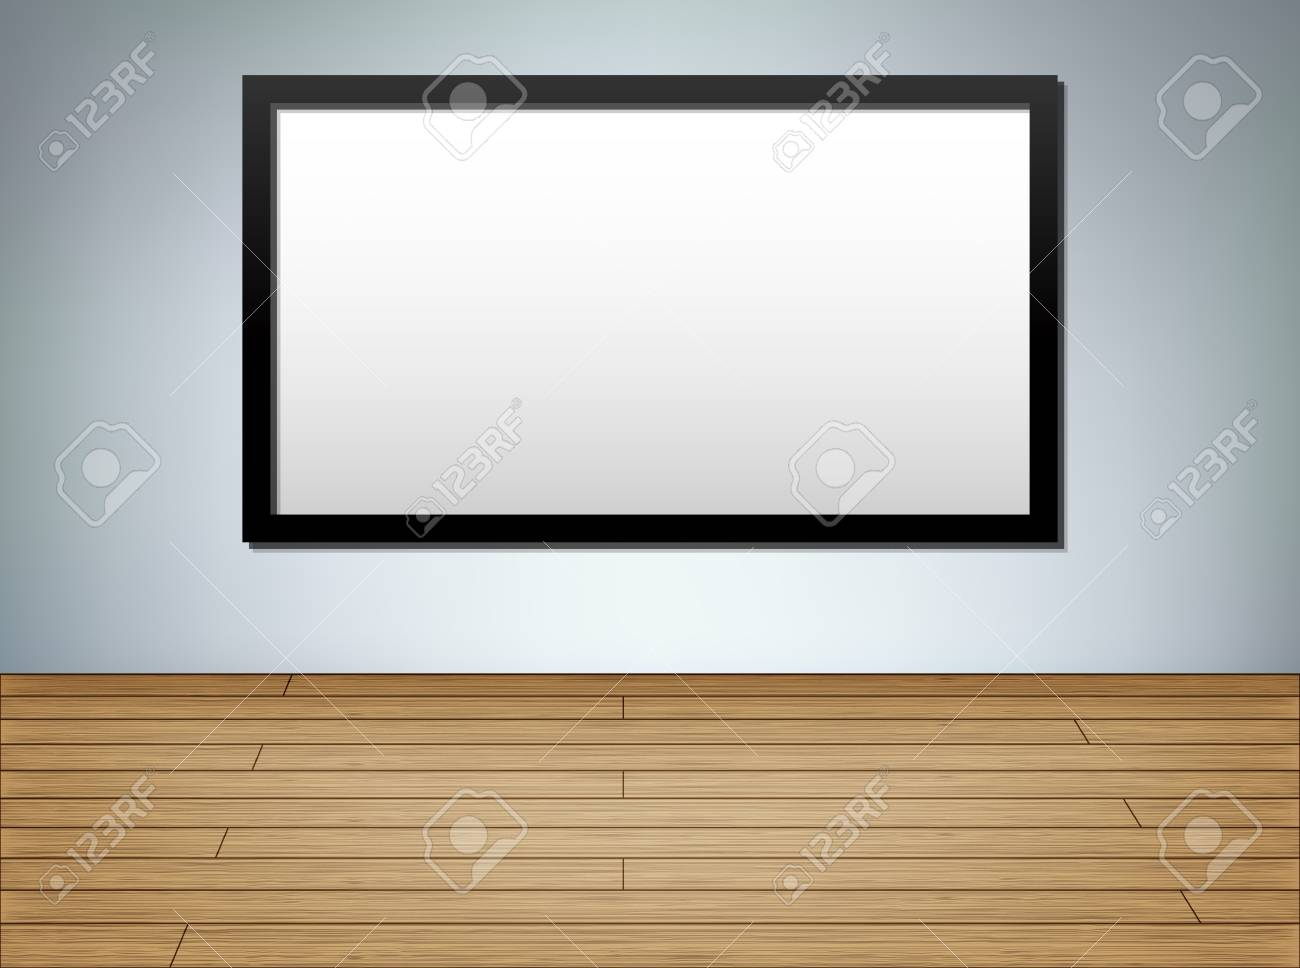 Frame in studio, interior background, eps10 vector illustration with copy space Stock Vector - 16418414